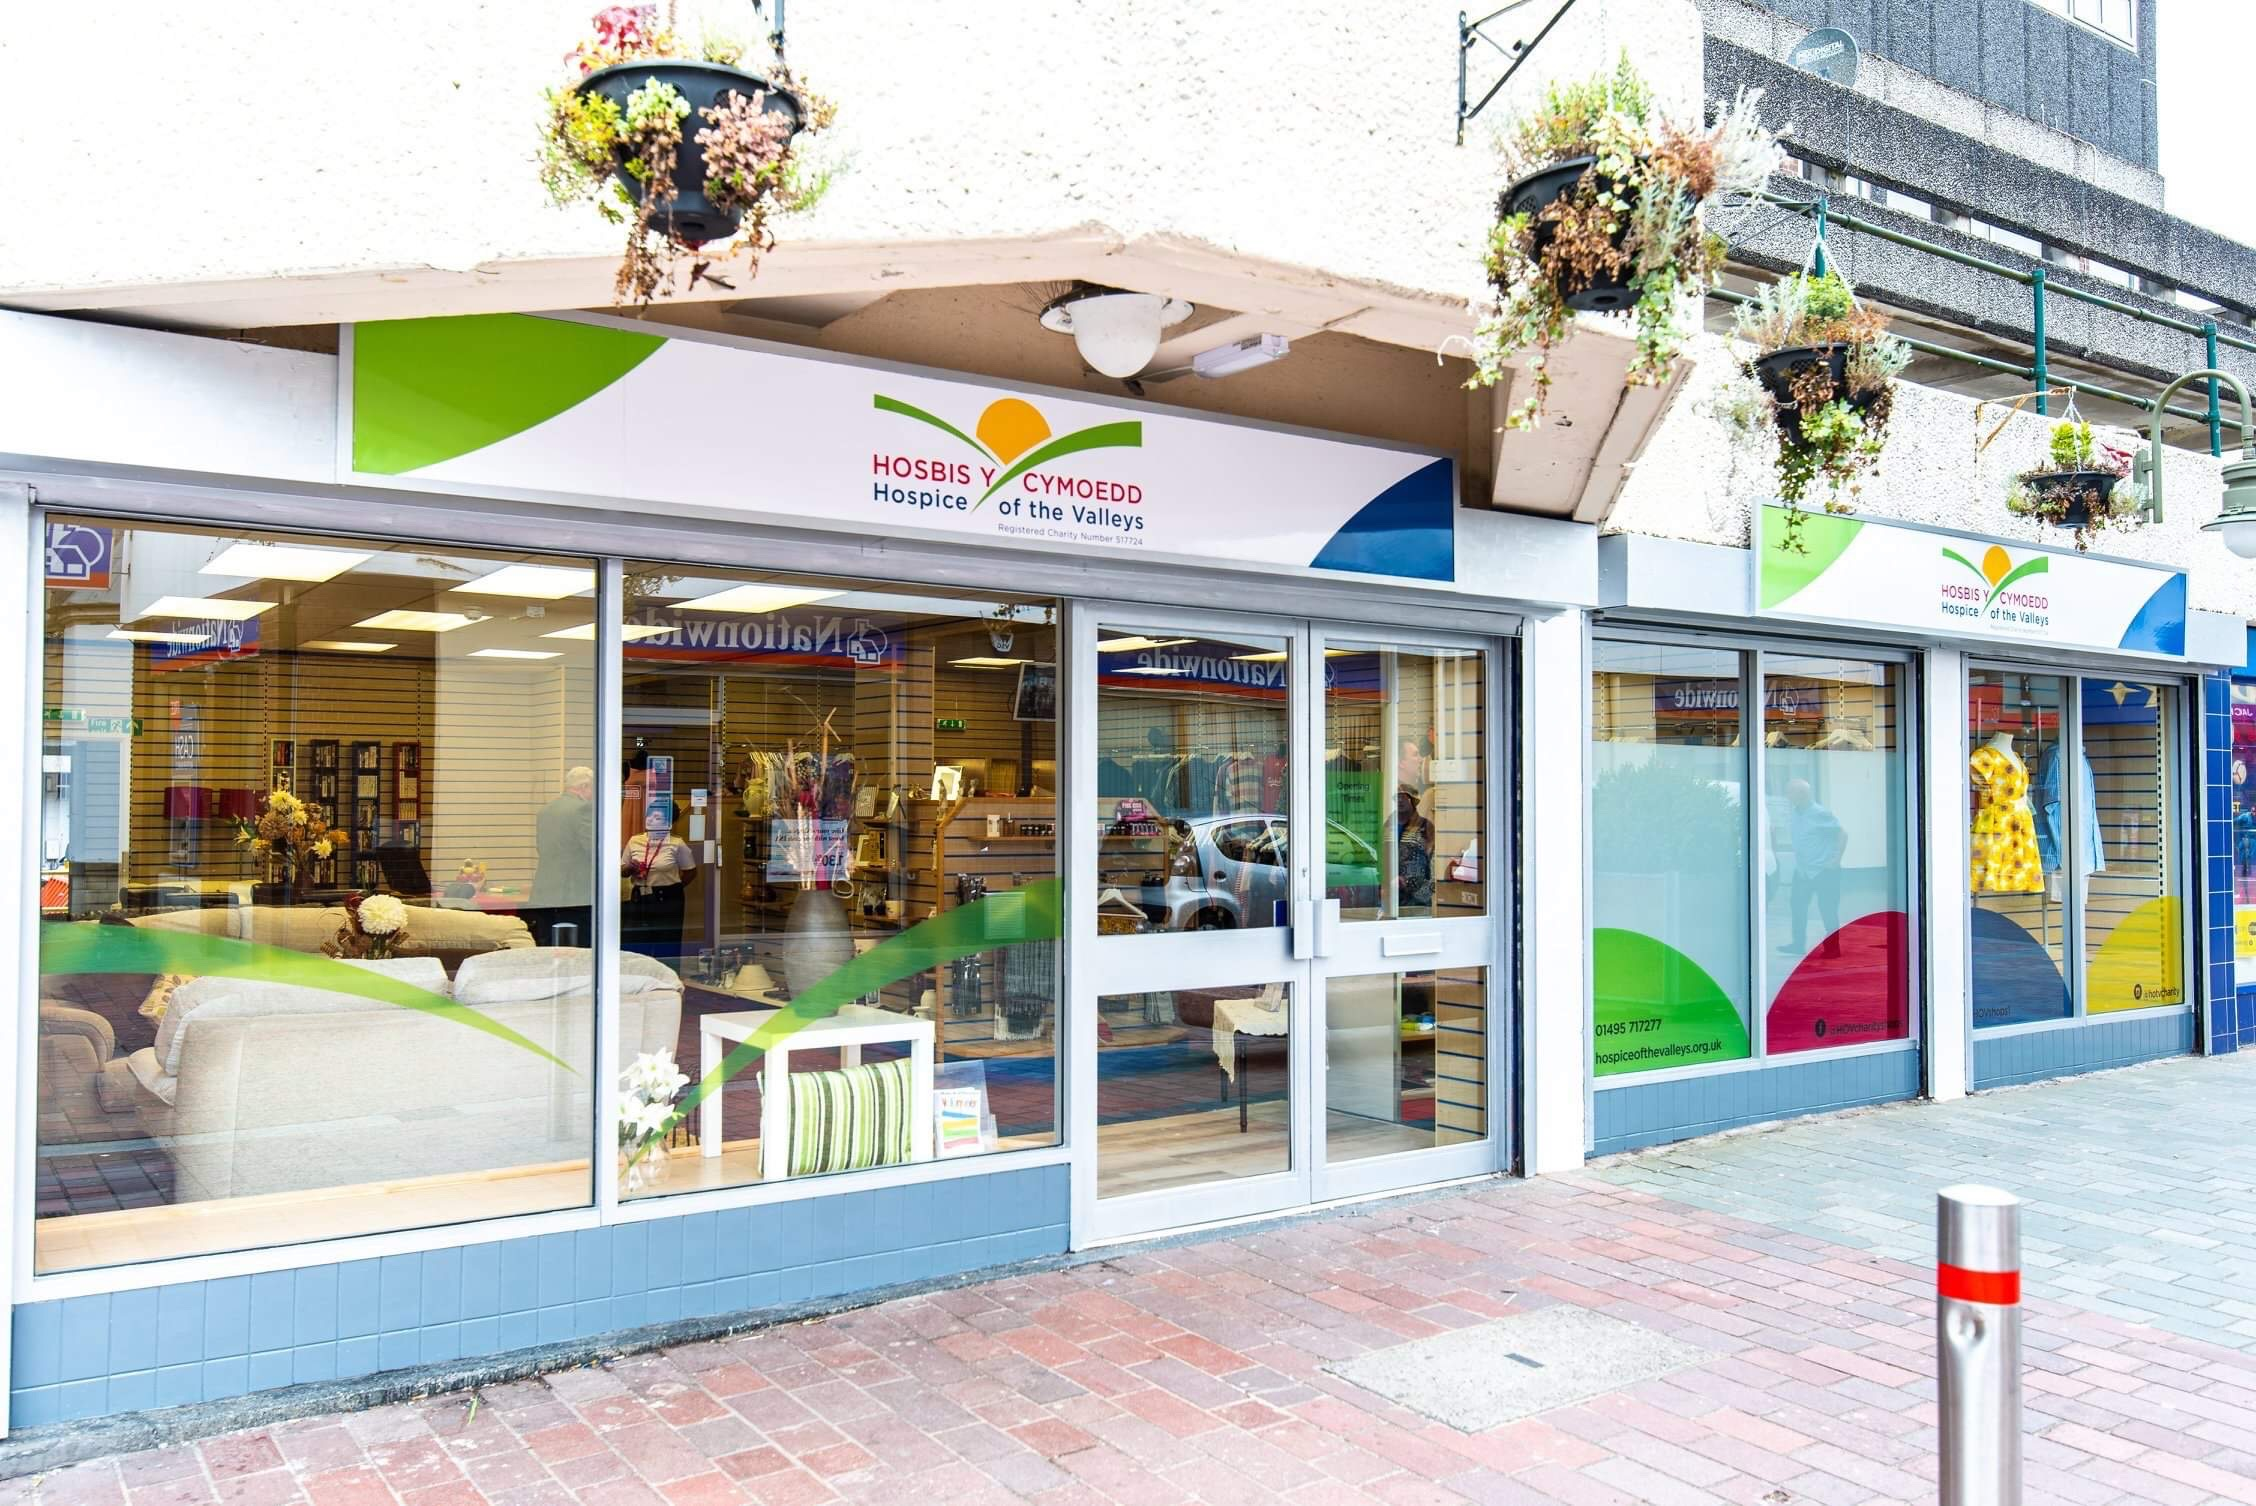 External shot of a Hospice of the Valleys charity shop